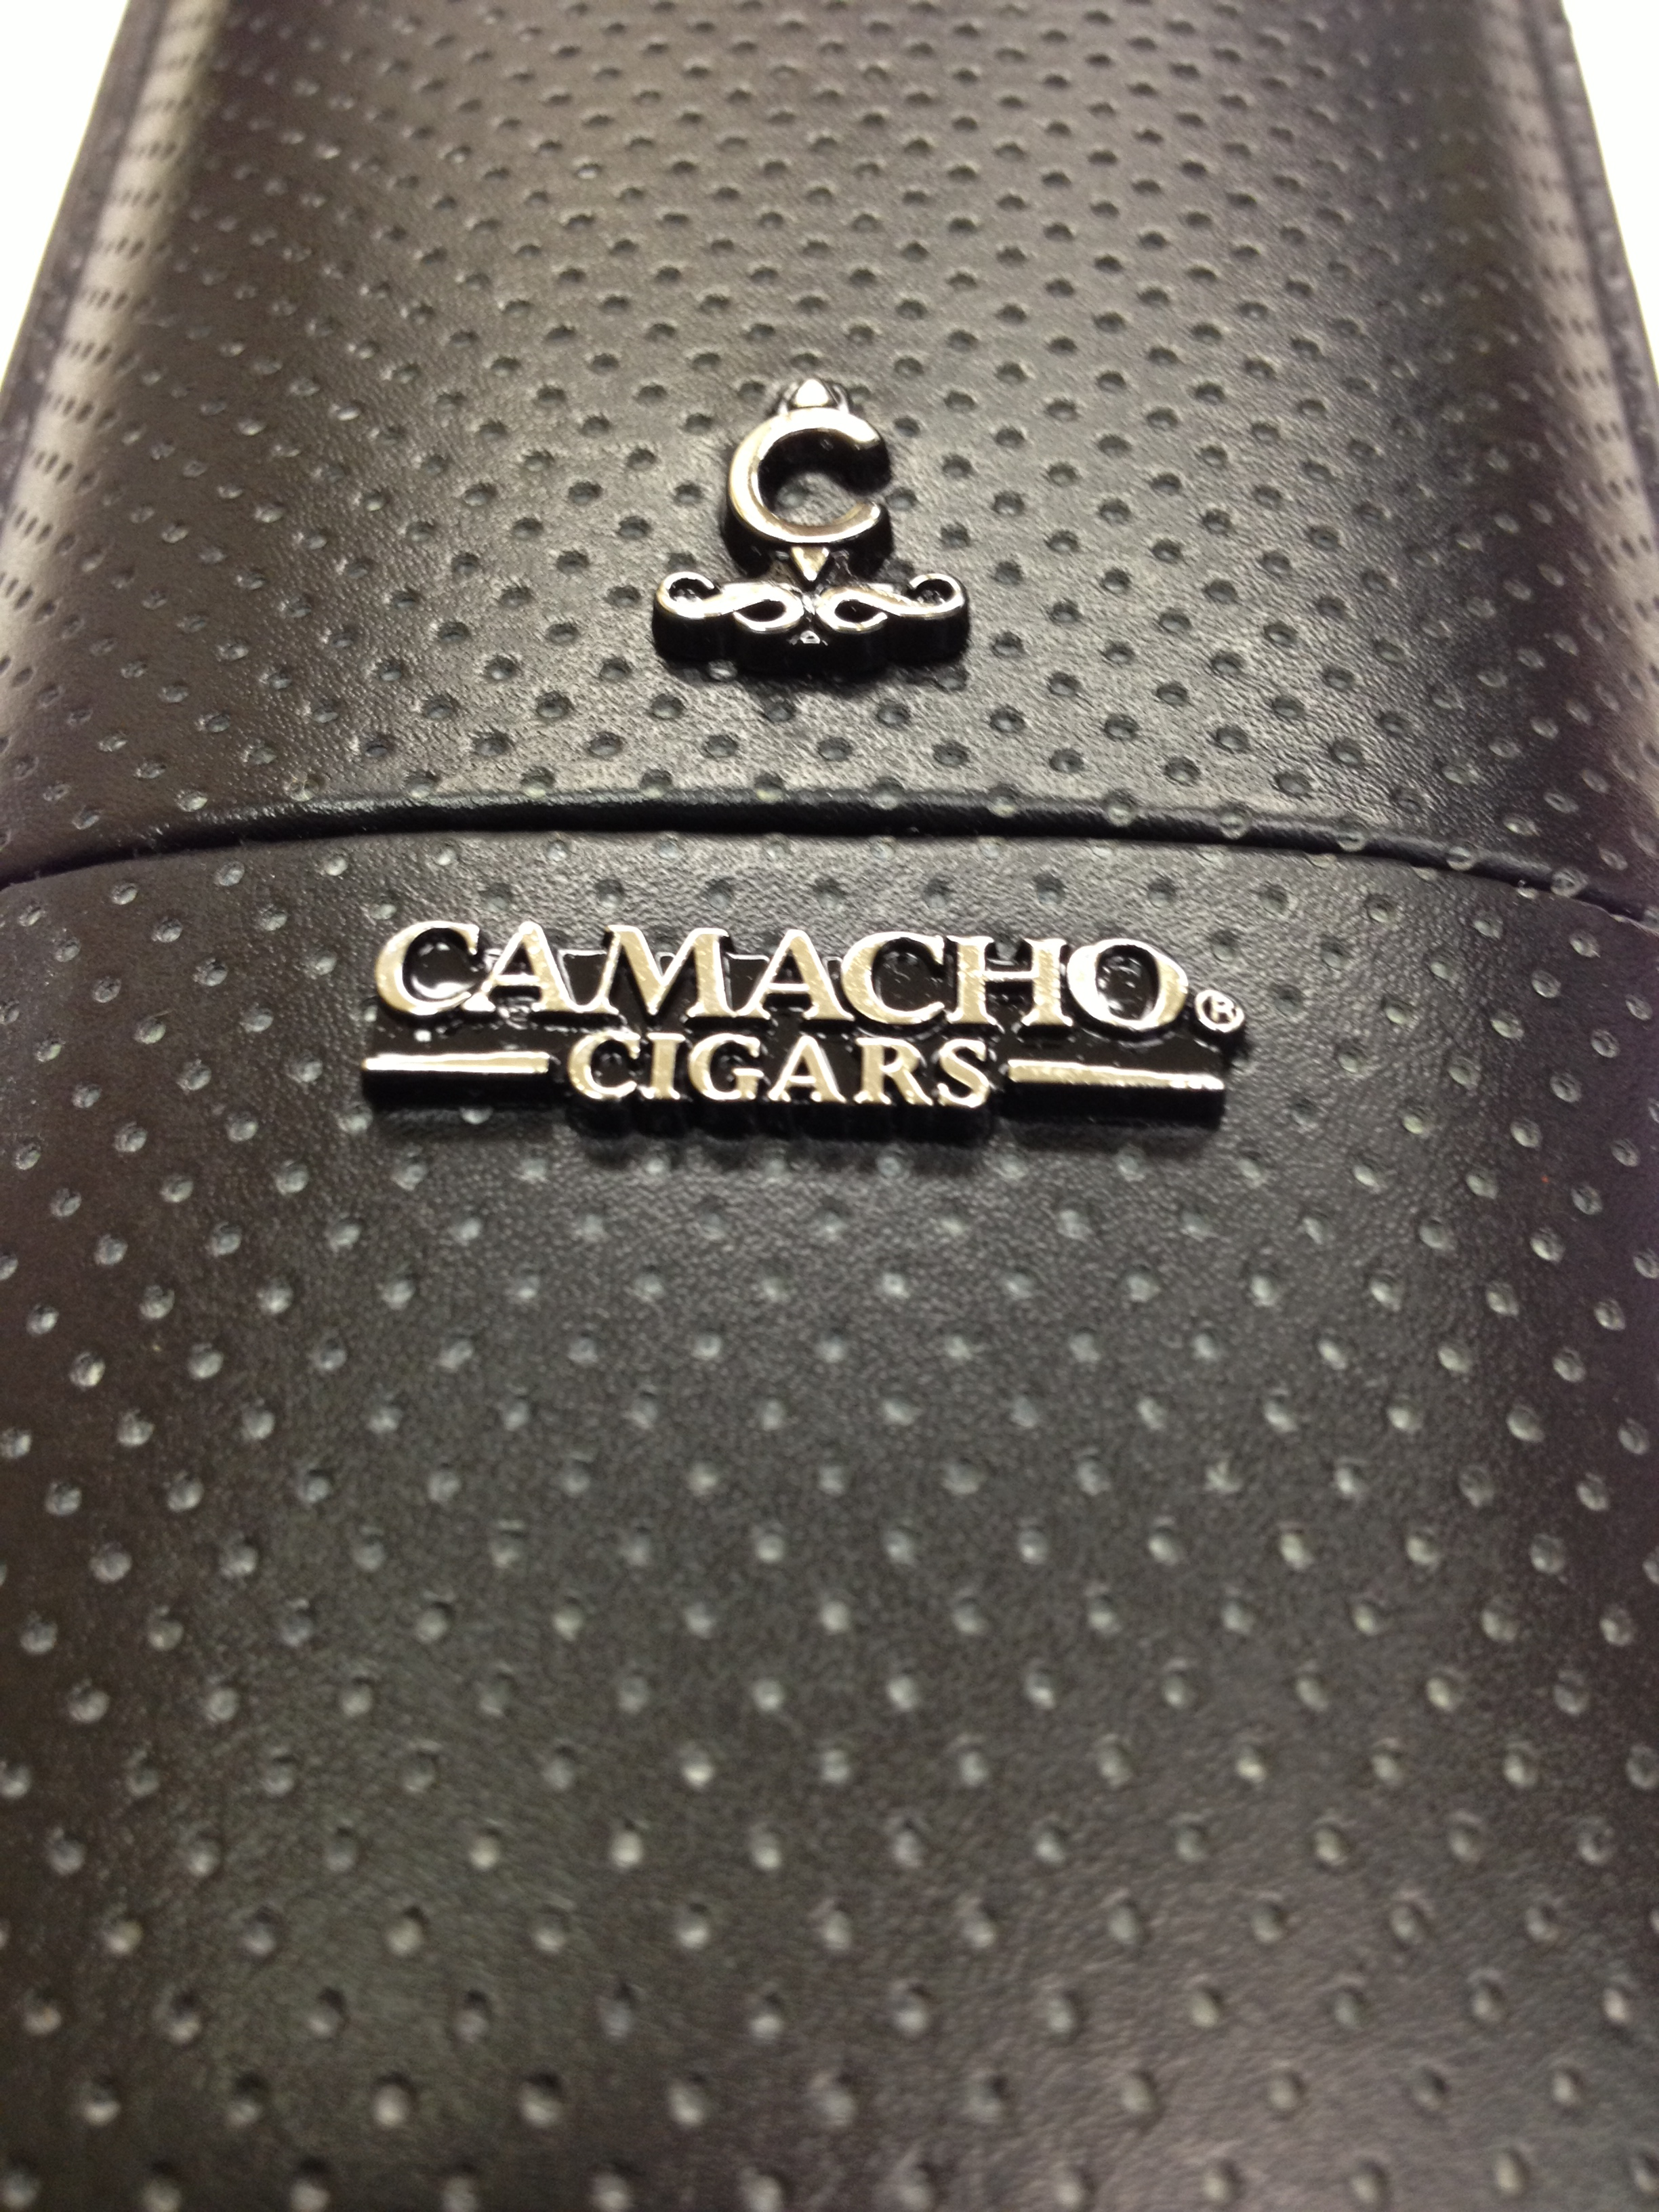 camacho cigars cases image